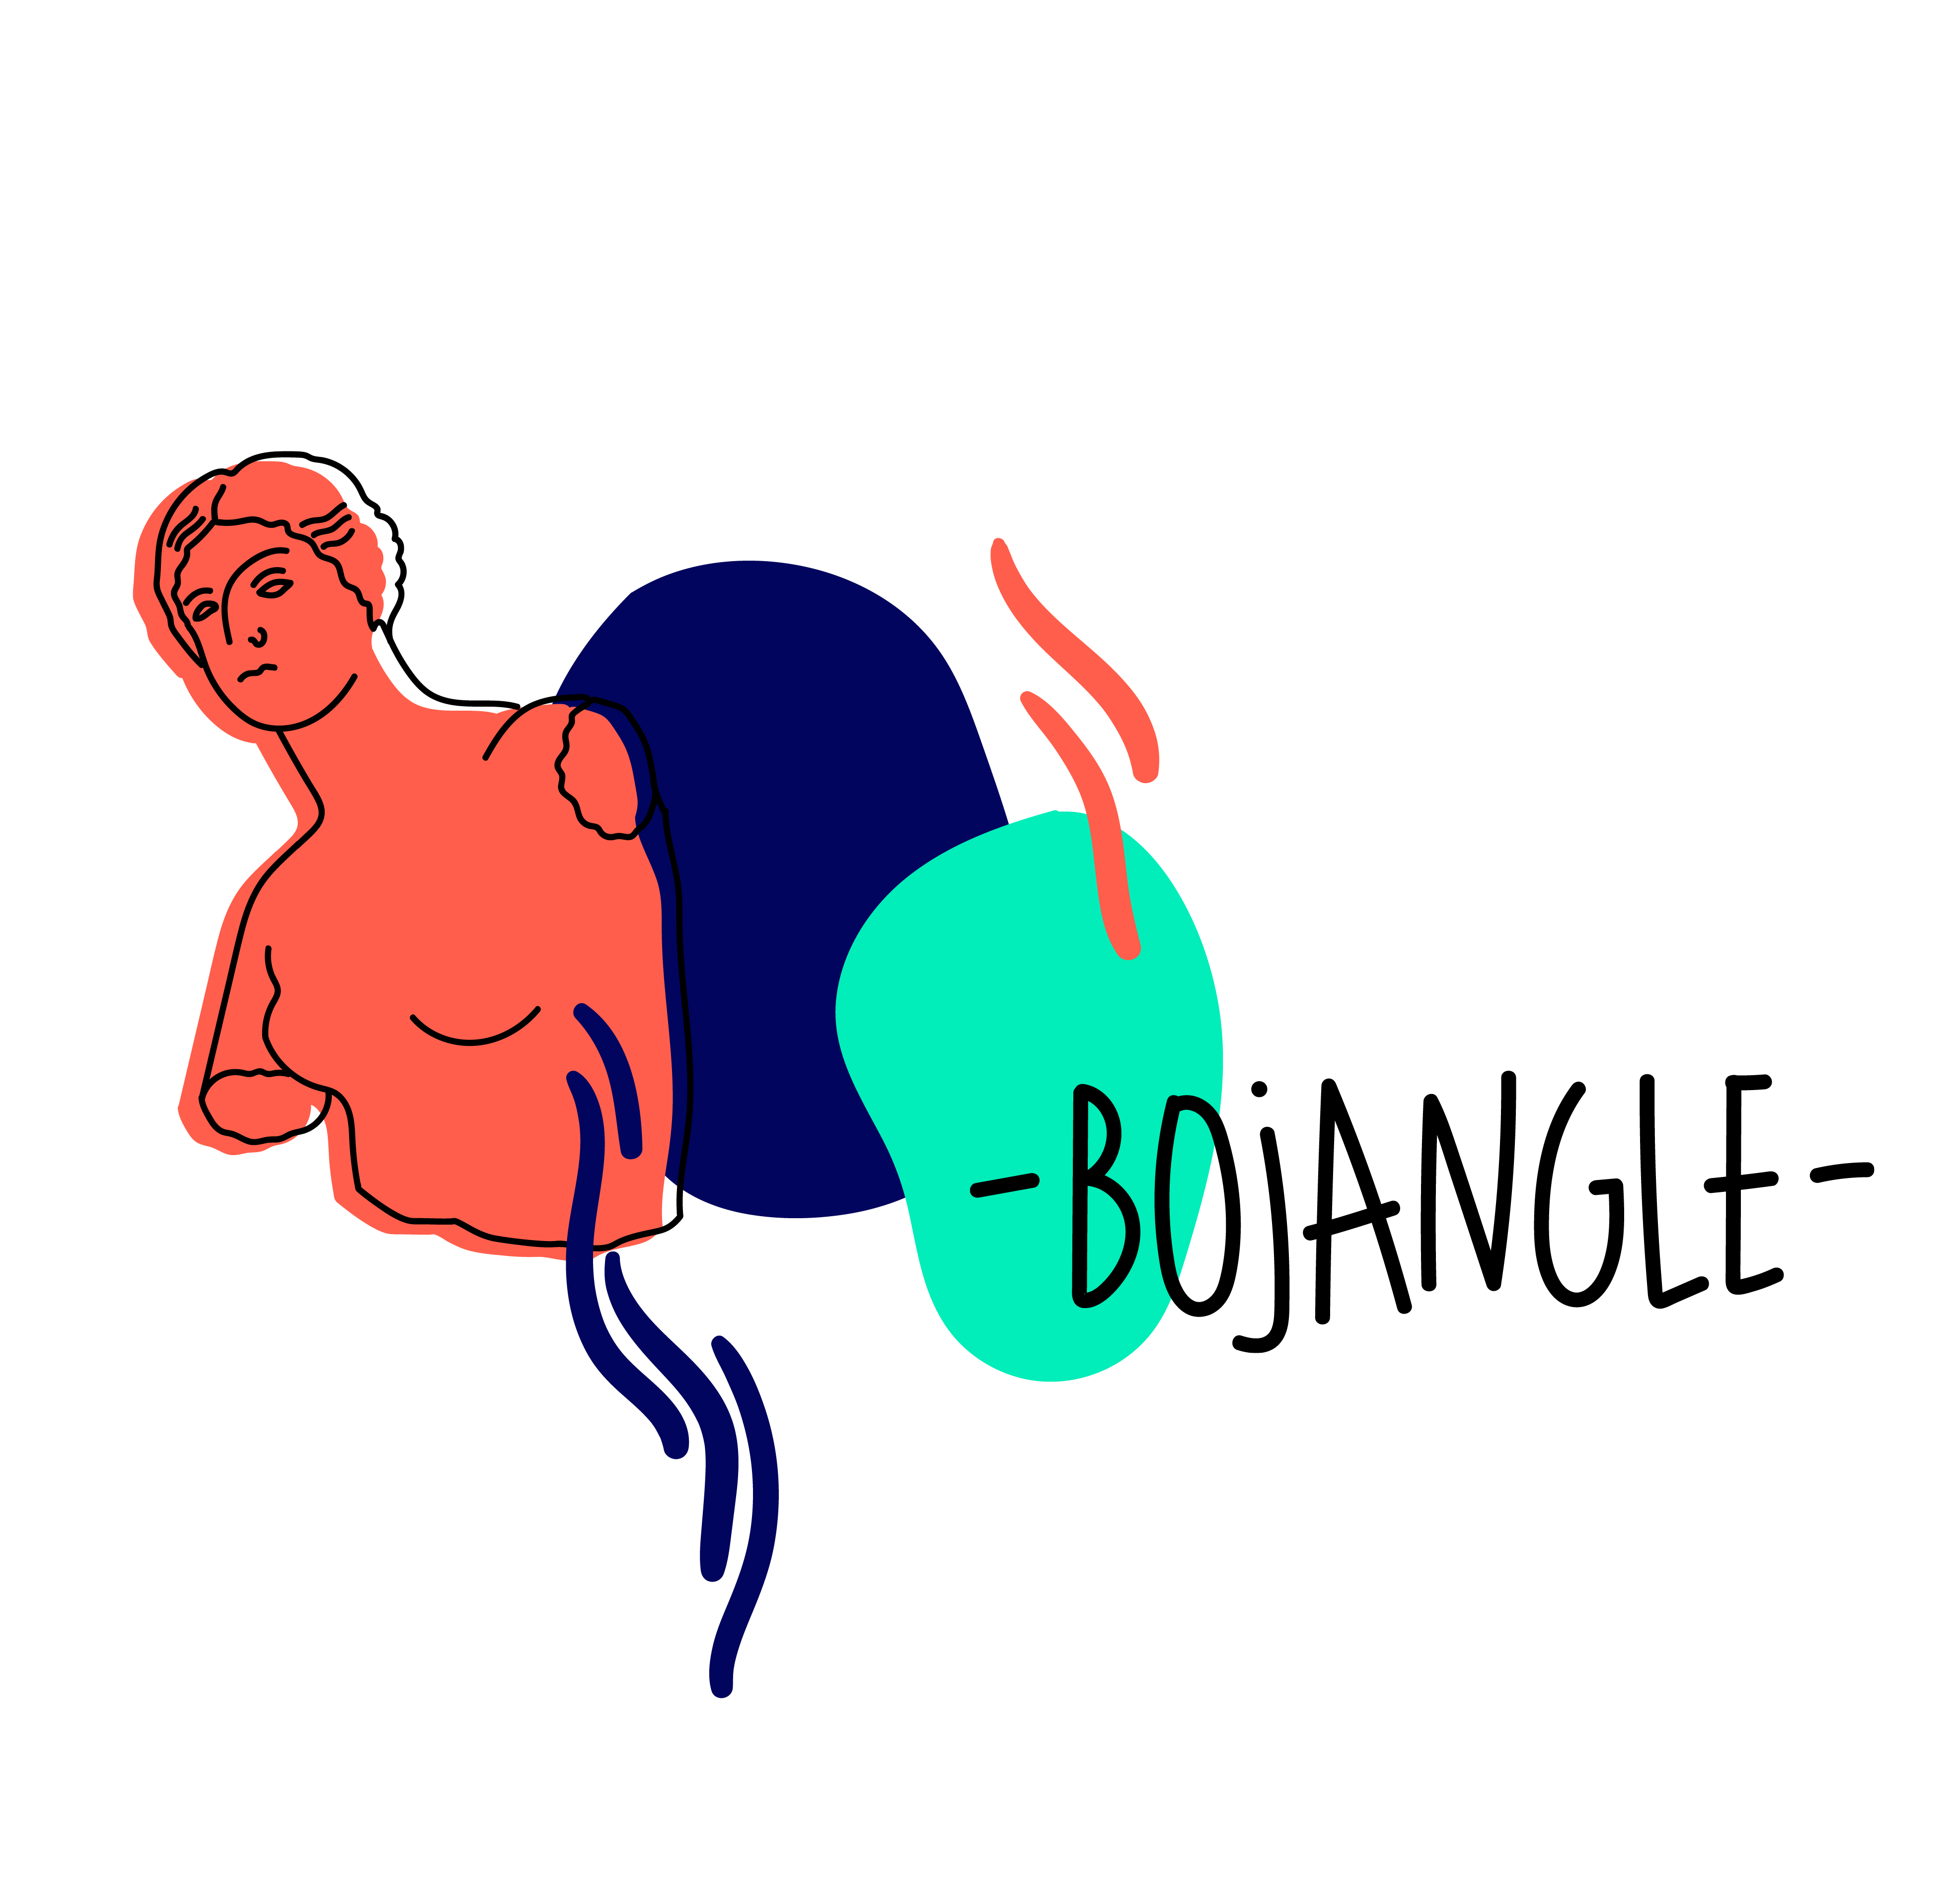 Illustration for Bojangle label